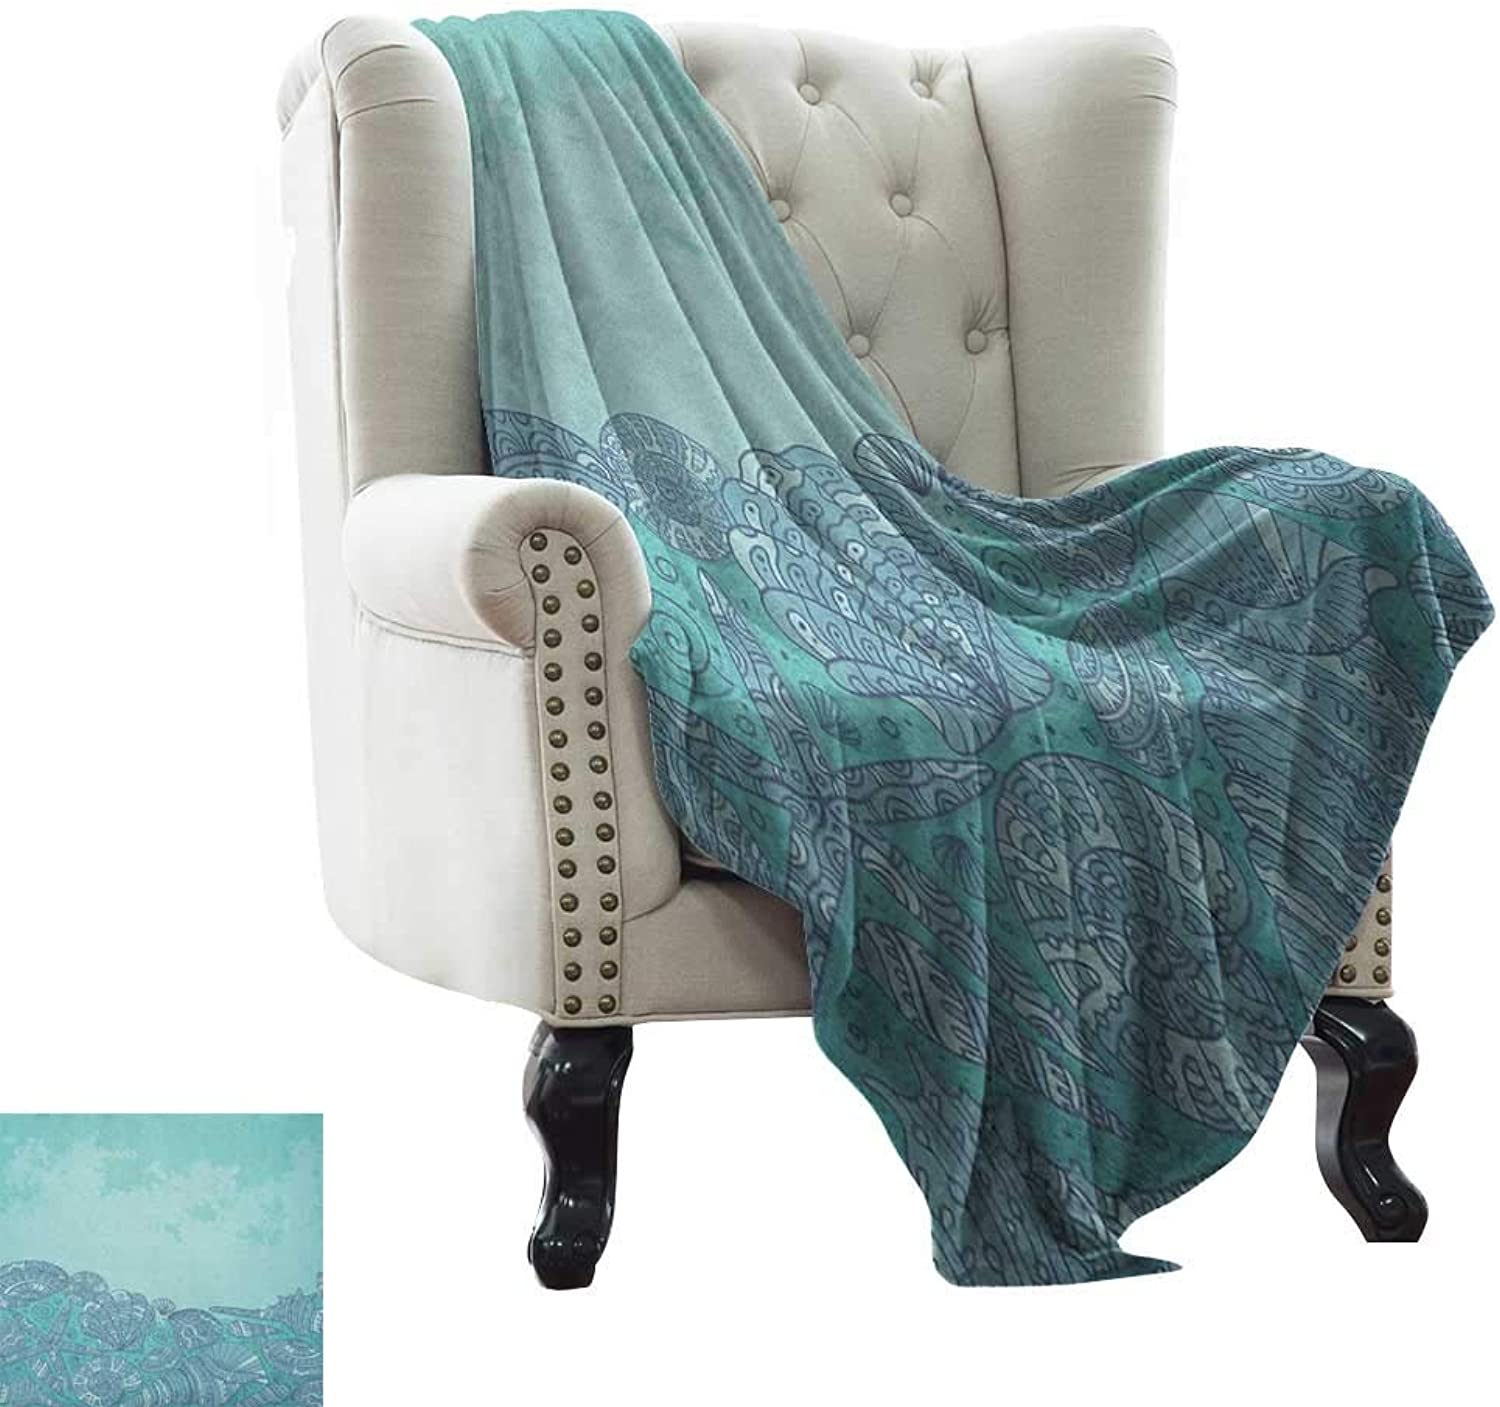 Weighted Blanket for Kids Nautical,Marine Beauty Shell with Seahorse Starfish Oysters Ocean Sea Tropical Image, Turquoise Teal Microfiber All Season Blanket for Bed or Couch Multicolor 50 x60